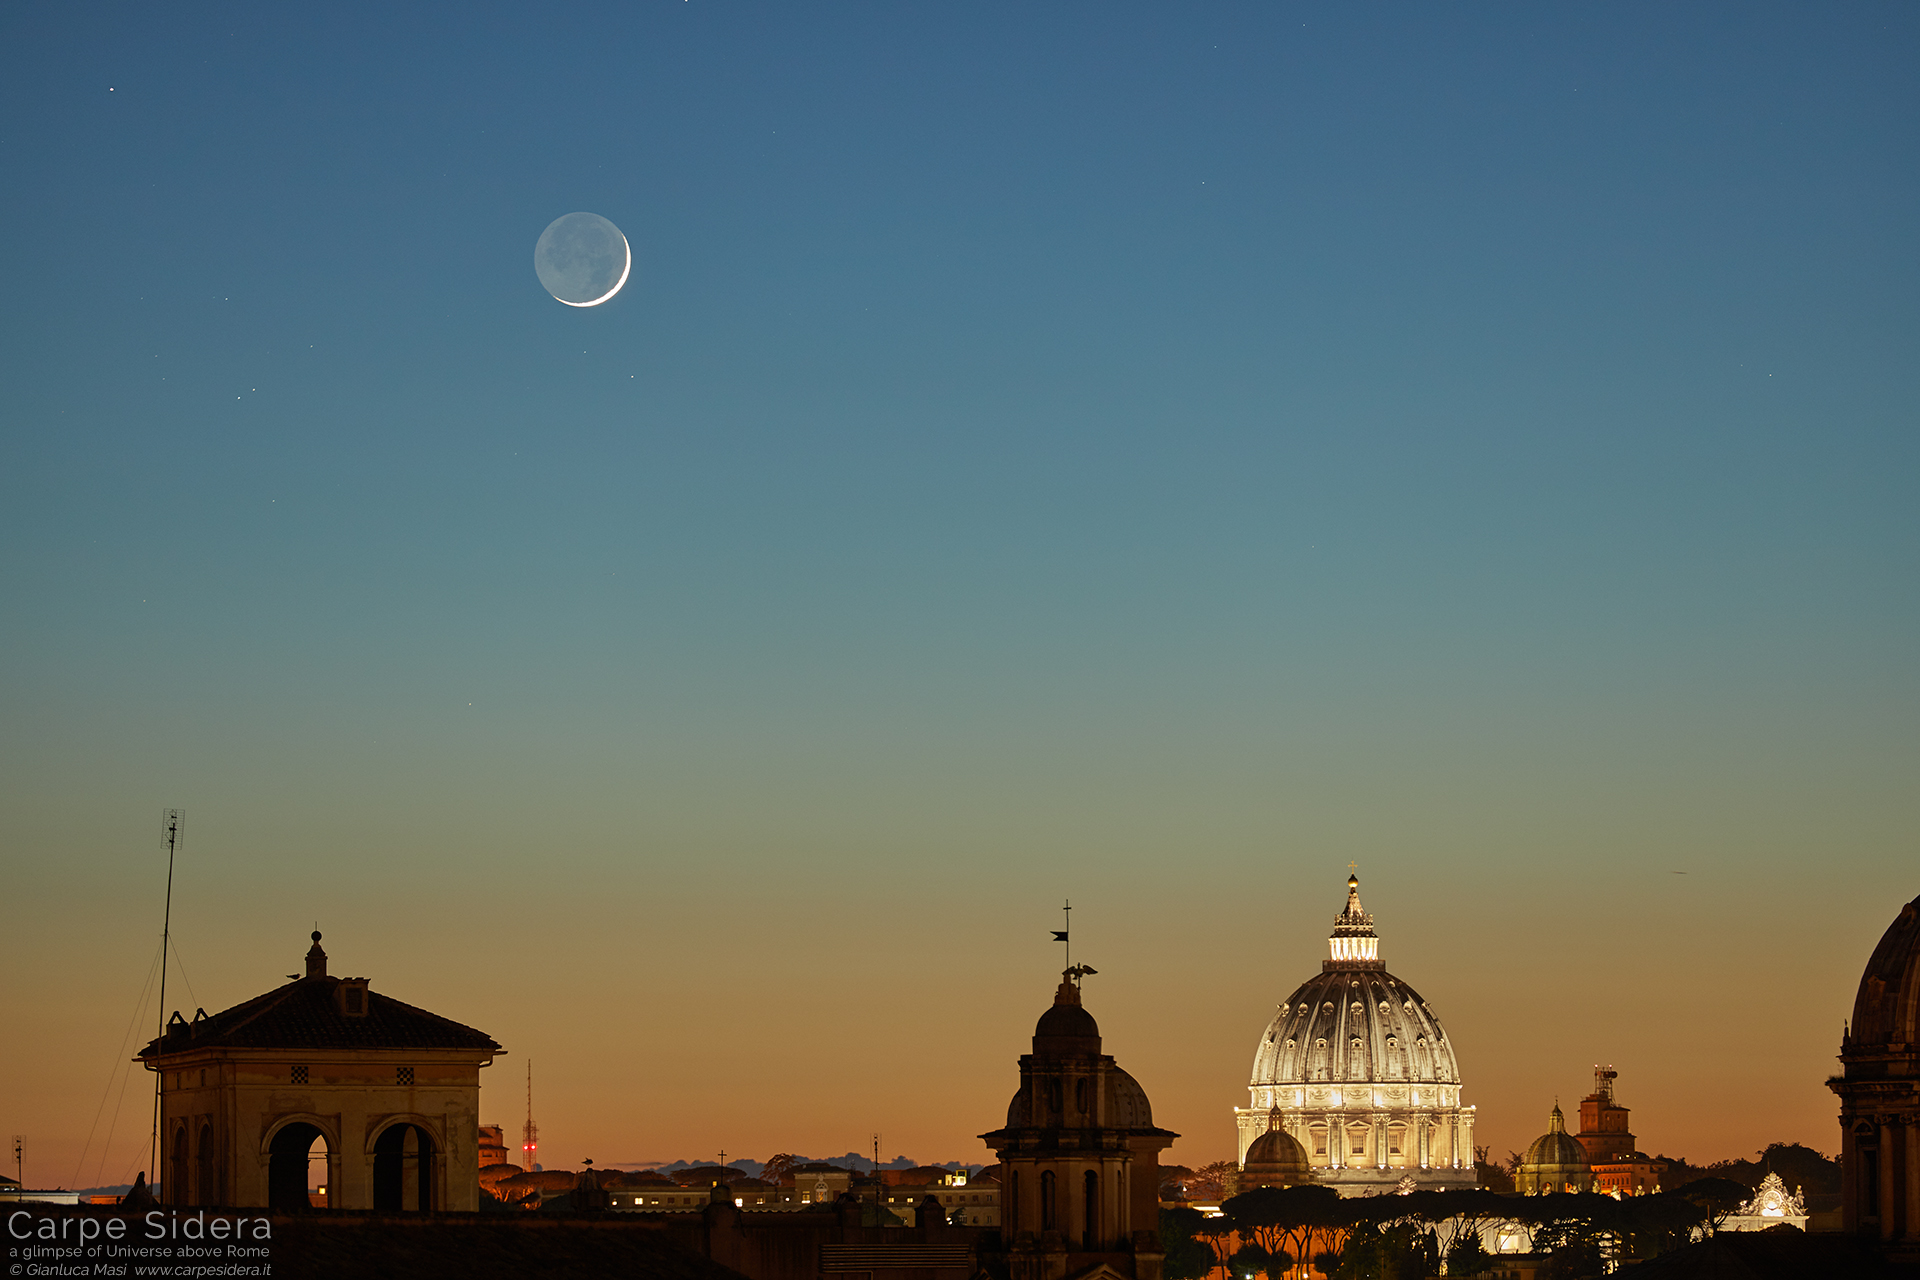 A sharp Moon crescent adds its speechless beauty above St. Peter's Dome, at sunset. The star Aldebaran is visible in the upper left corner.